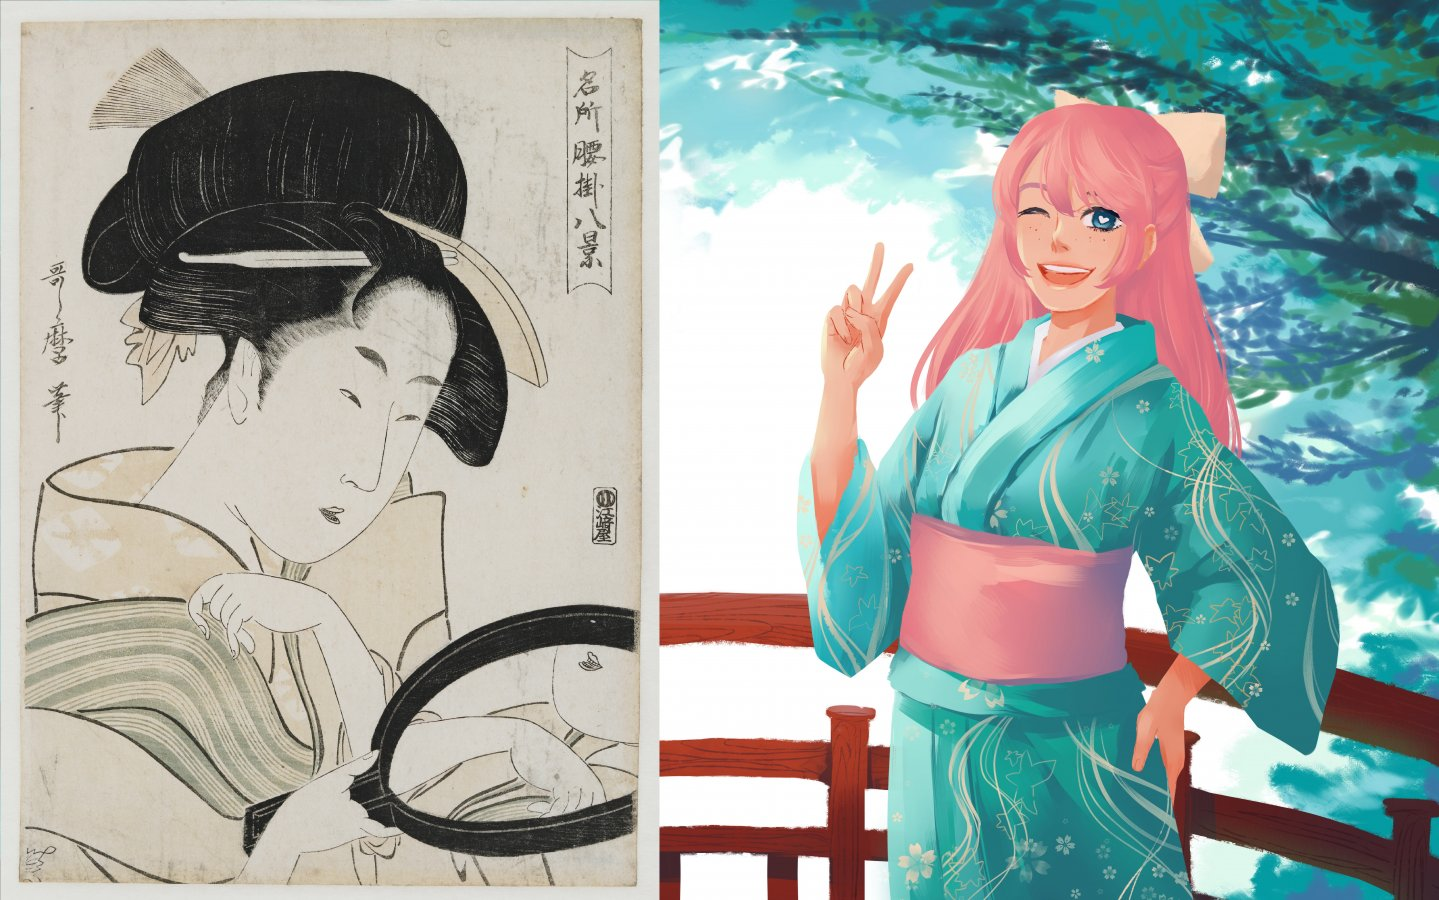 Kitagawa Utamaro, Schminkszene / Pummelpanda, Magical Girl (Collage AMBR) © Giverny, Fondation Claude Monet / Pummelpanda 2018